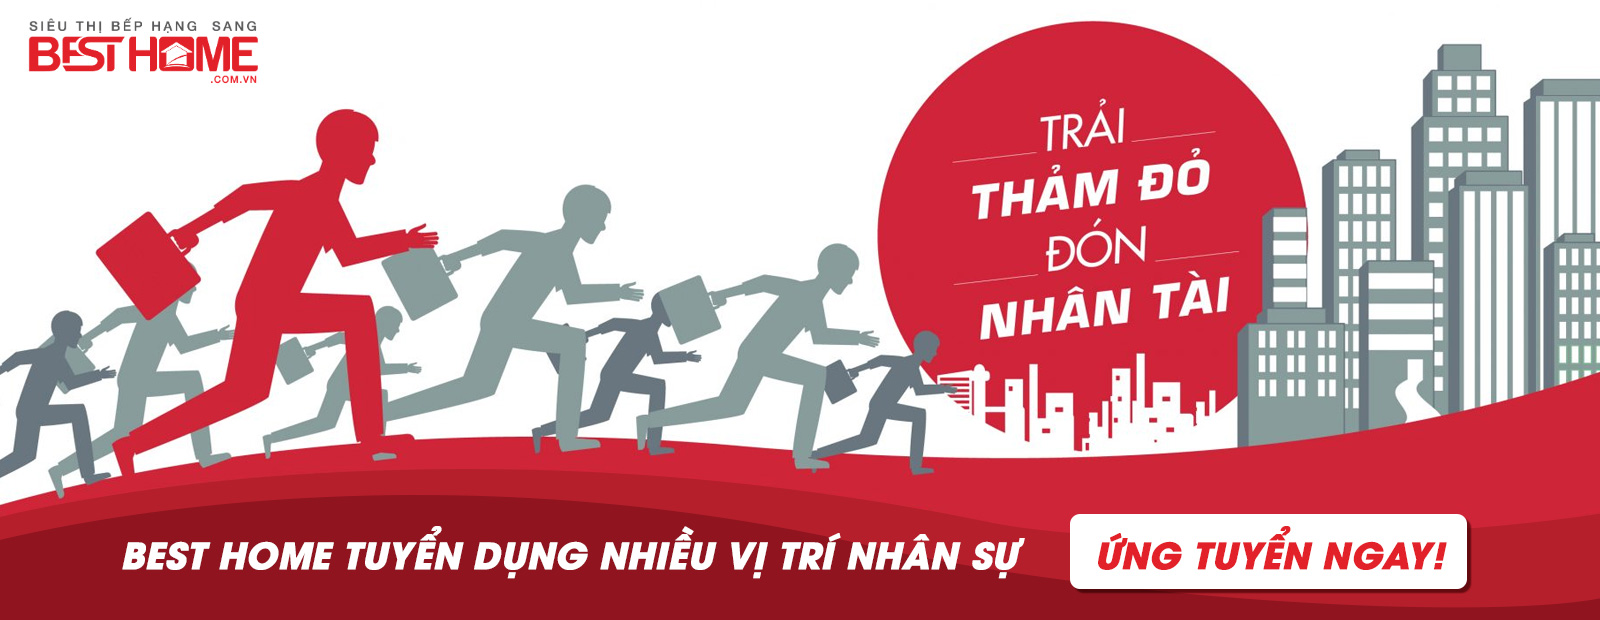 BESTHOME TUYỂN DỤNG